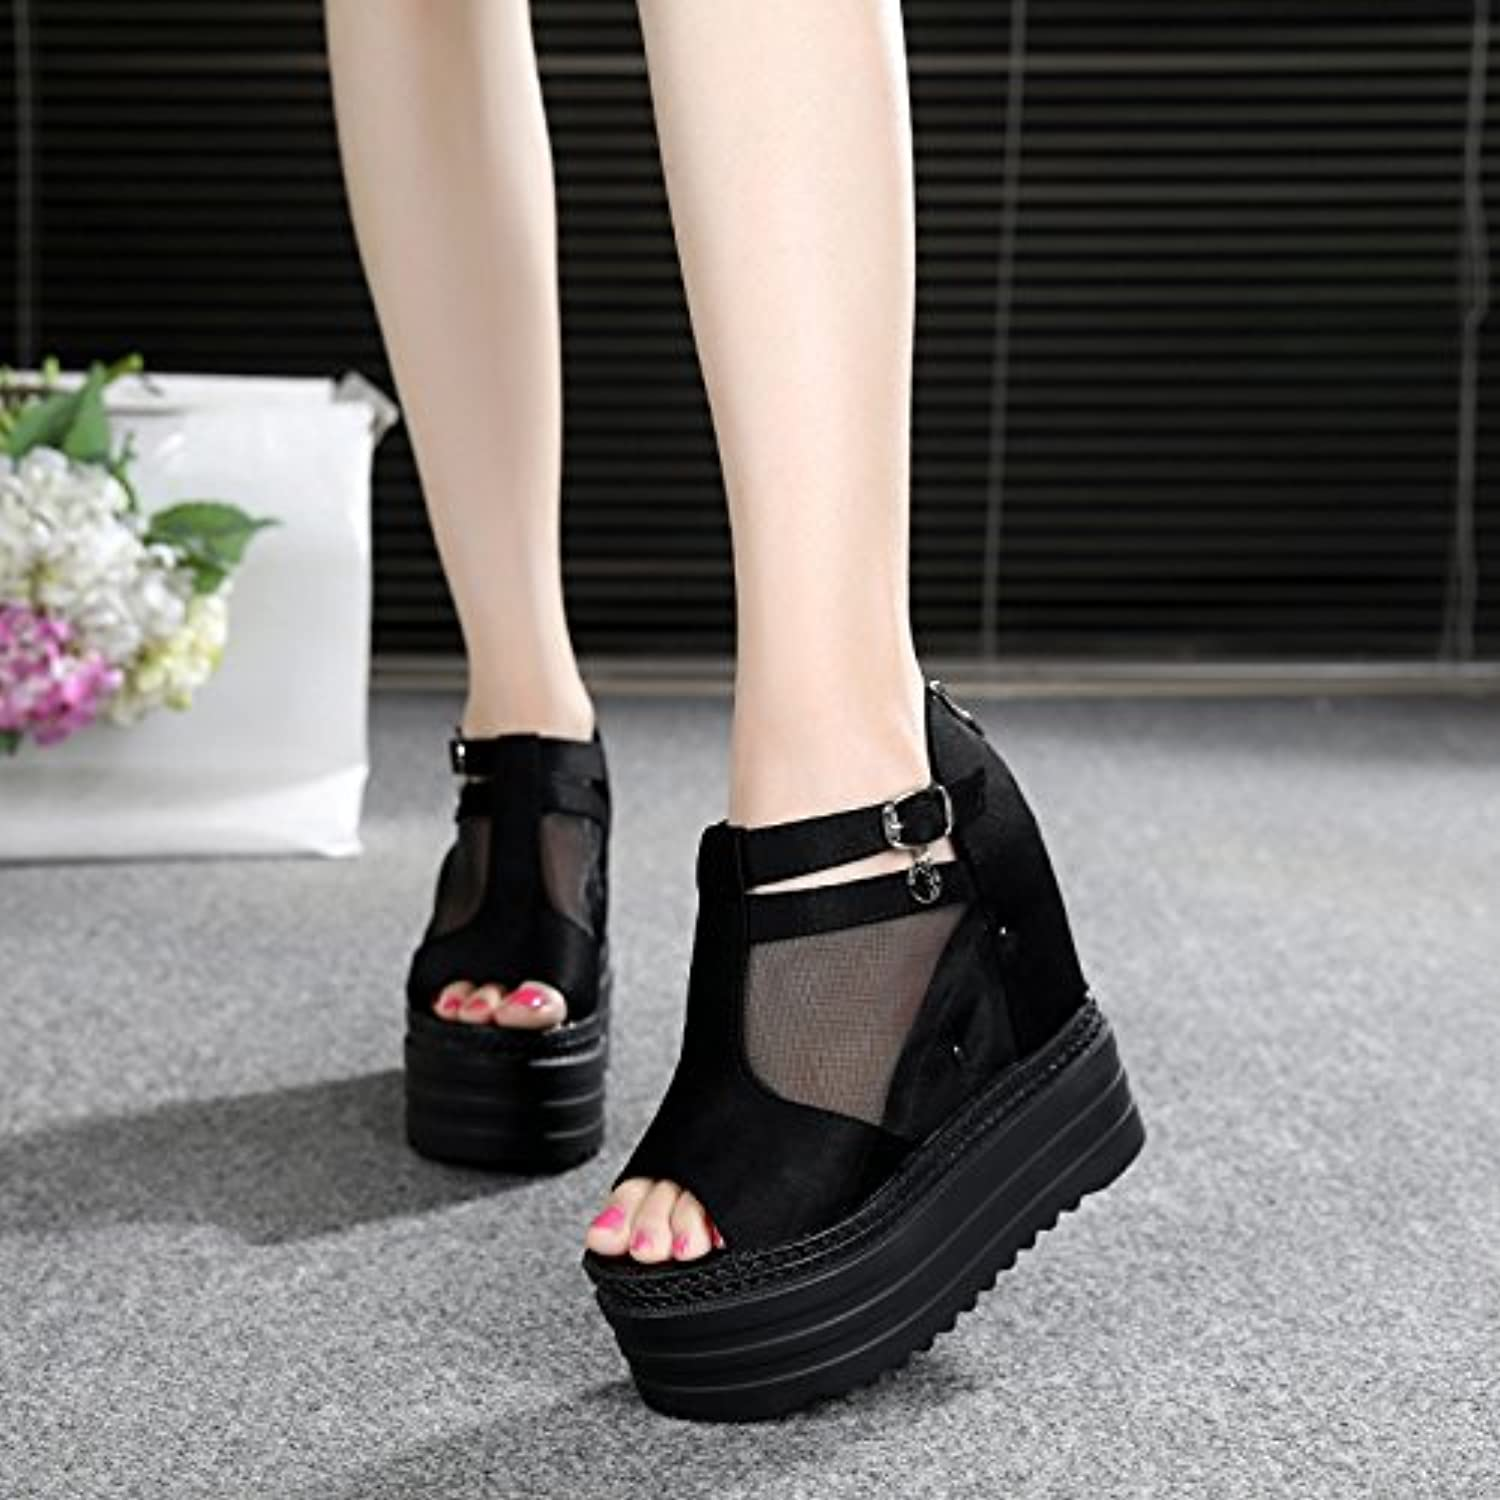 GTVERNH-Women's shoes Summer Fish Mouth 12Cm Super High Heels Sandals Slope Heels Gauze Women's shoes.